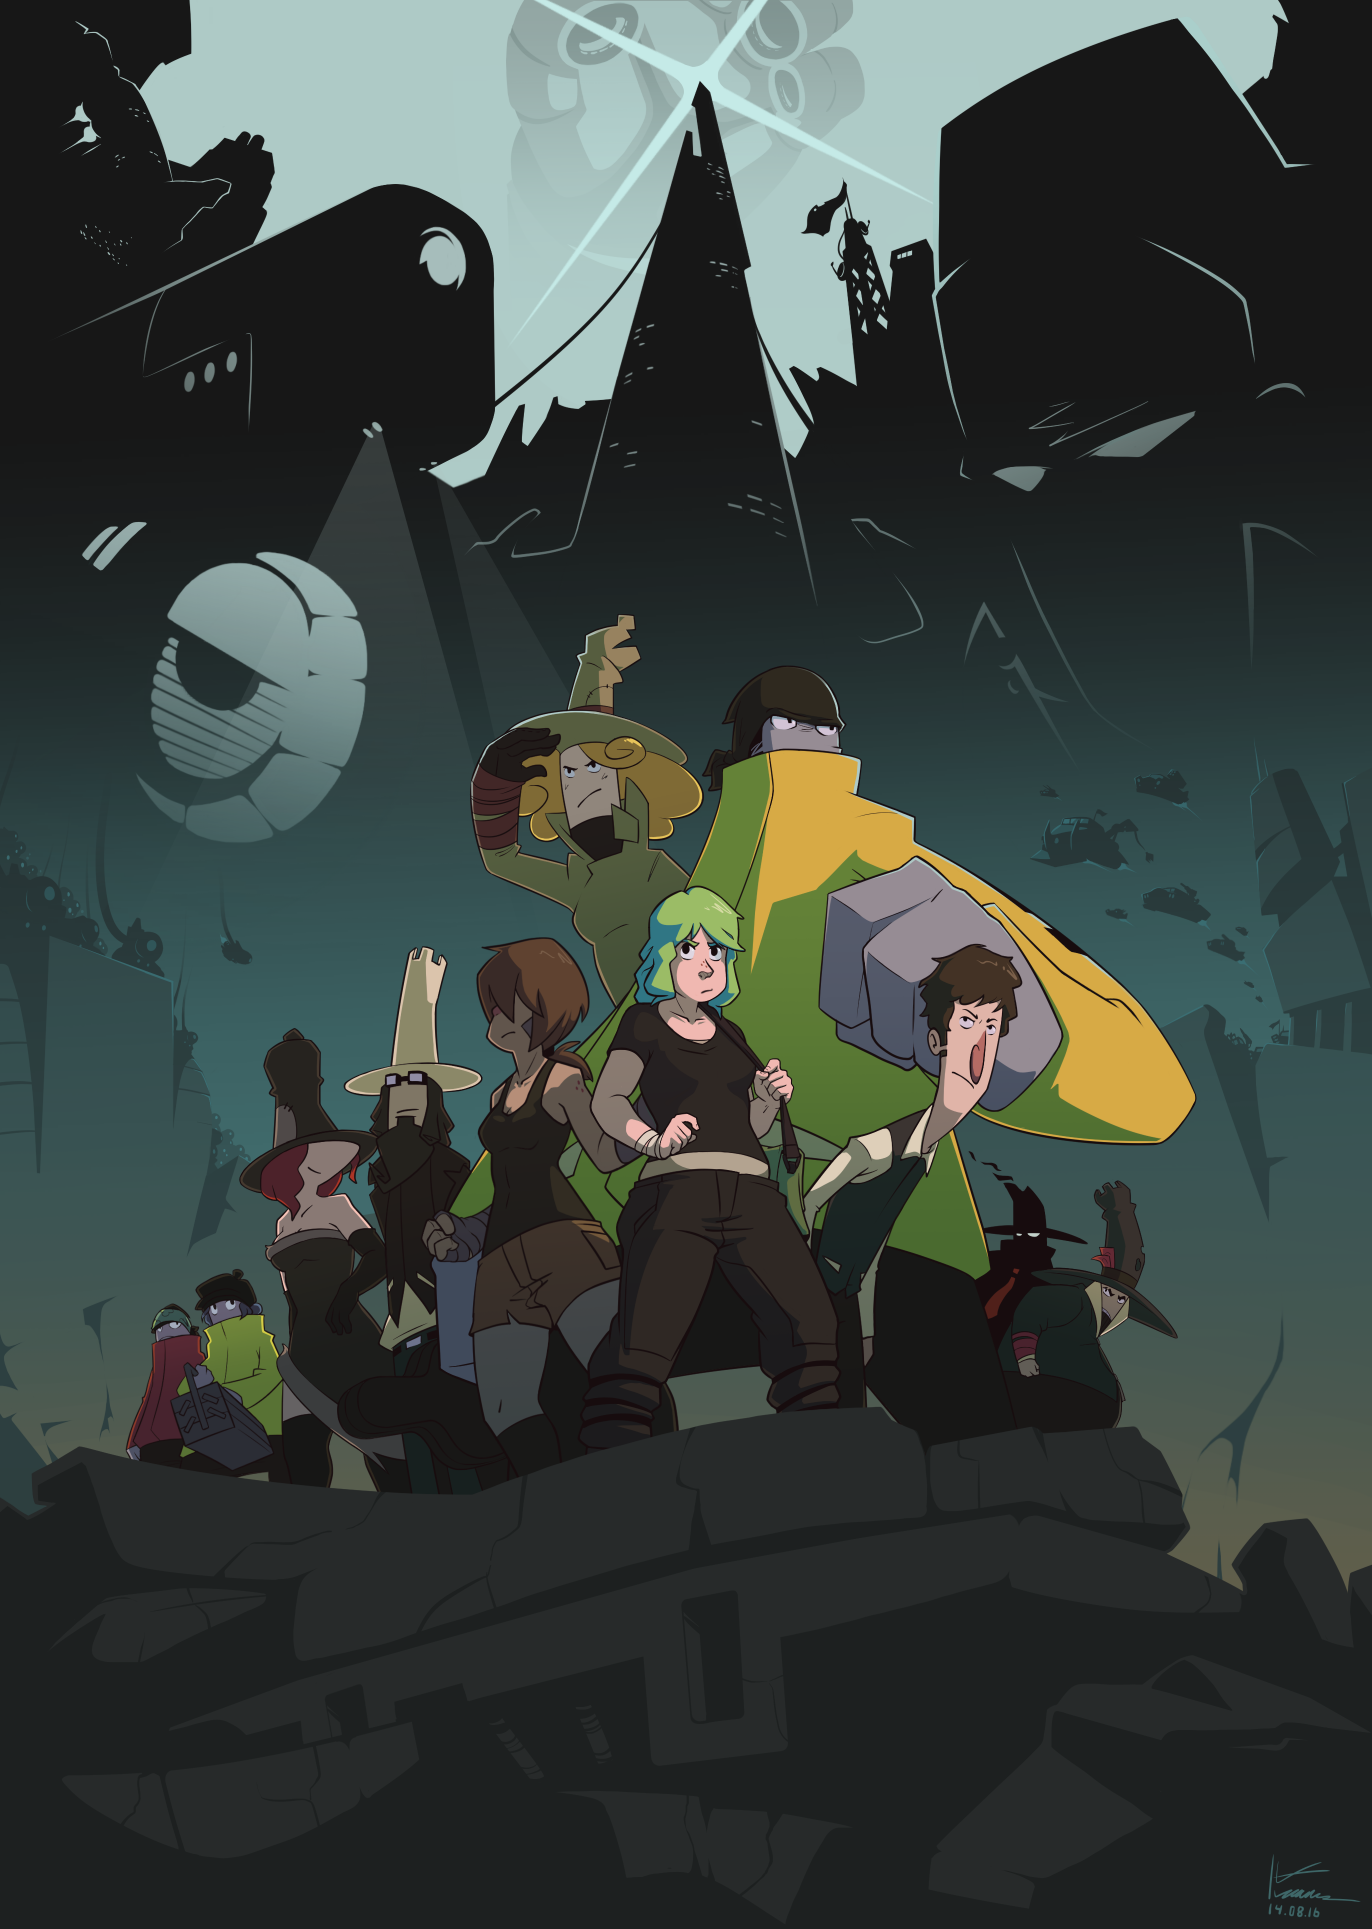 just another OoO poster